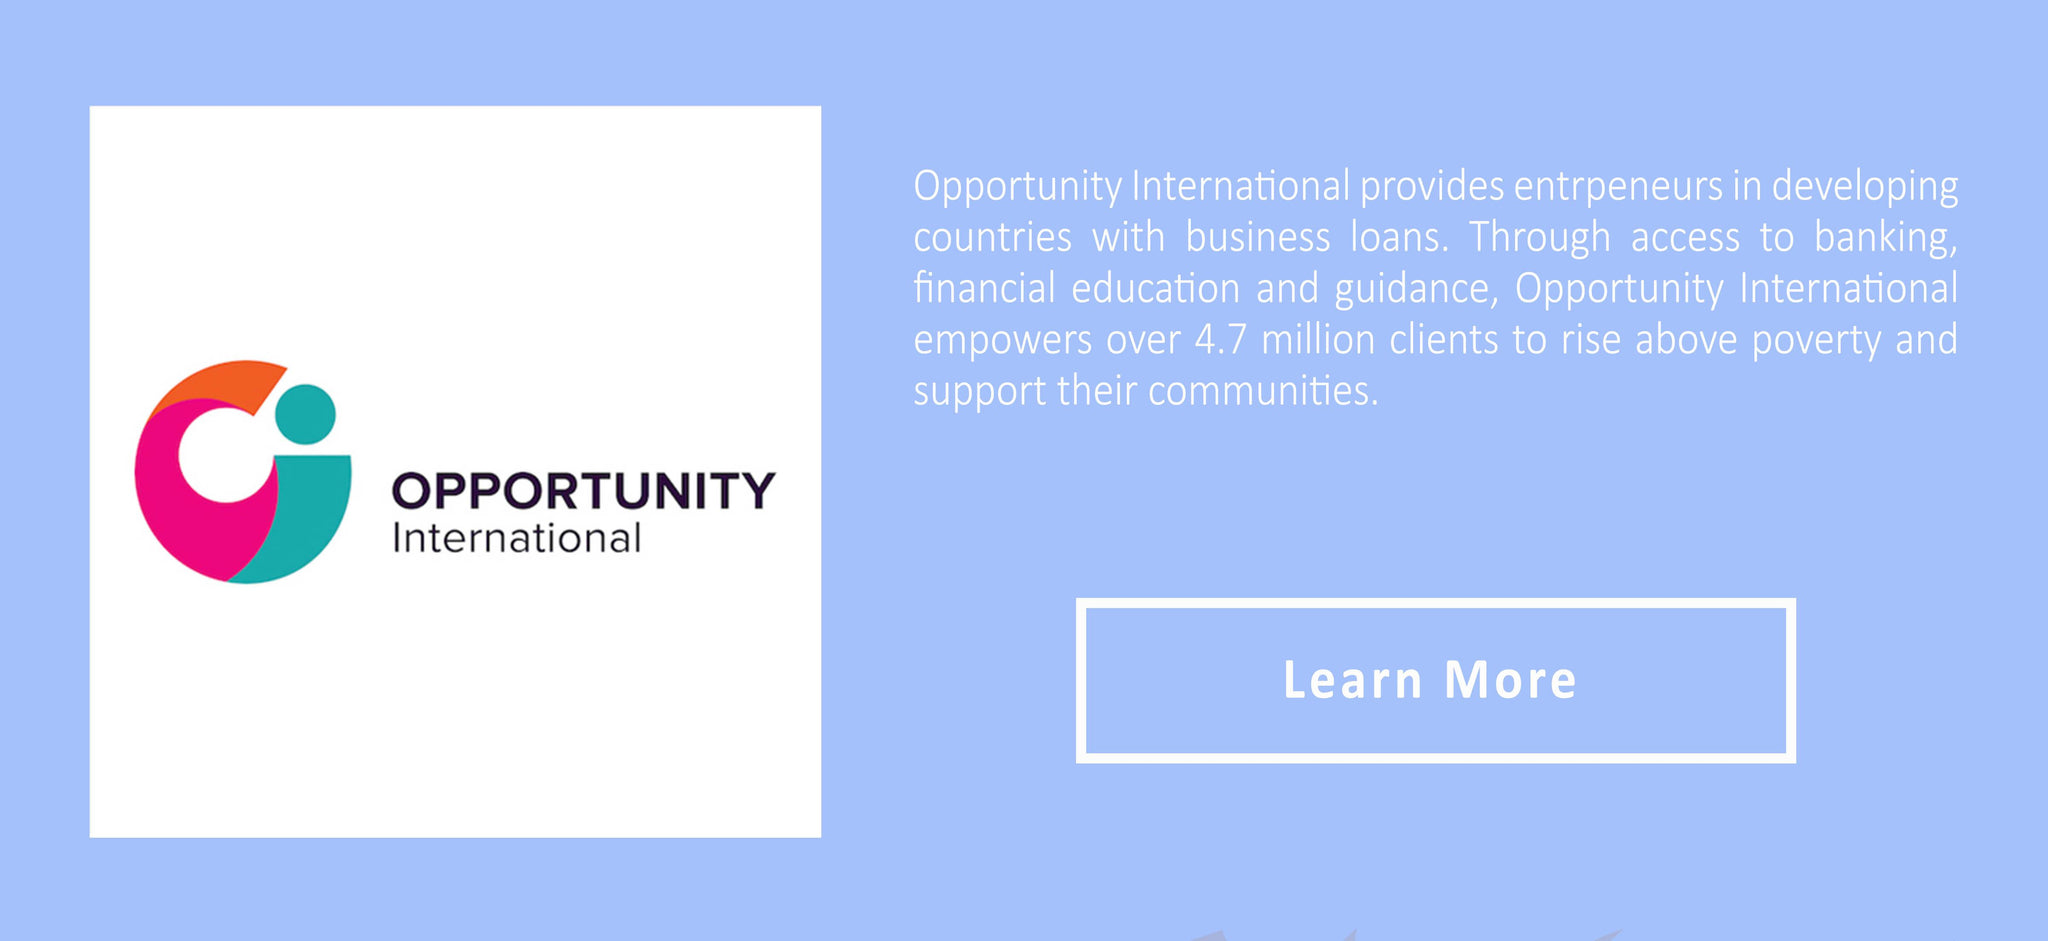 Opportunity international logo and description